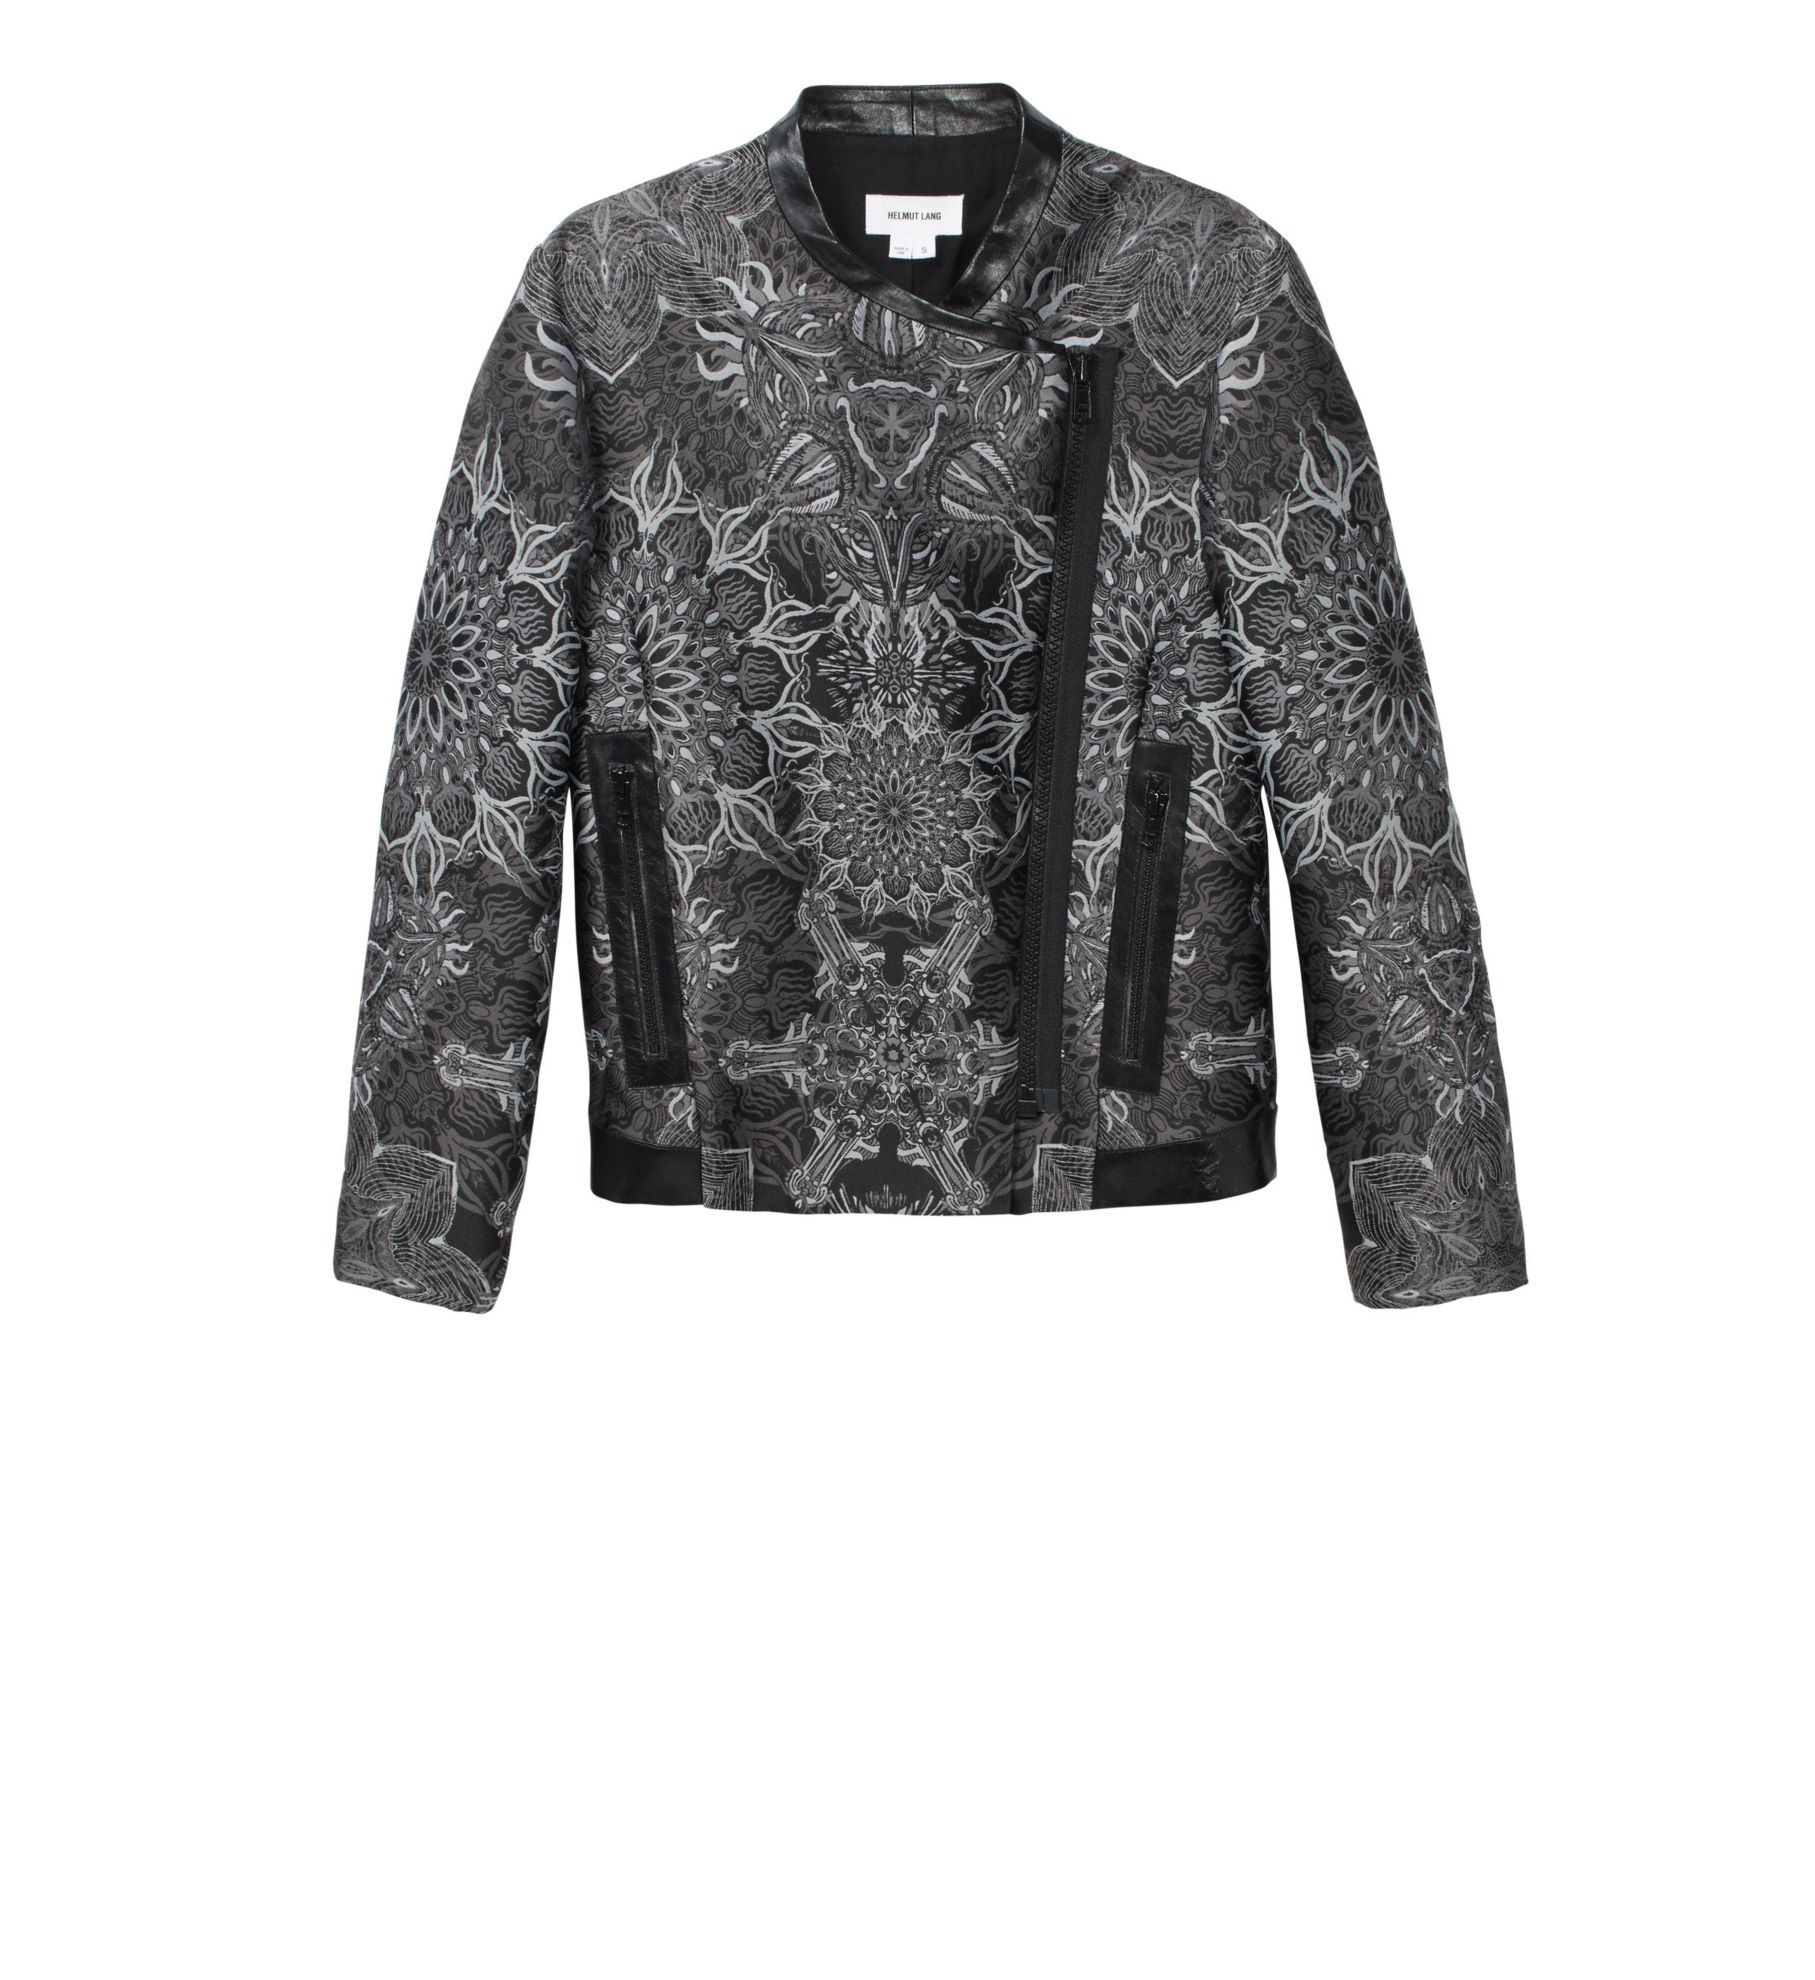 MEDALLION JACQUARD JACKET